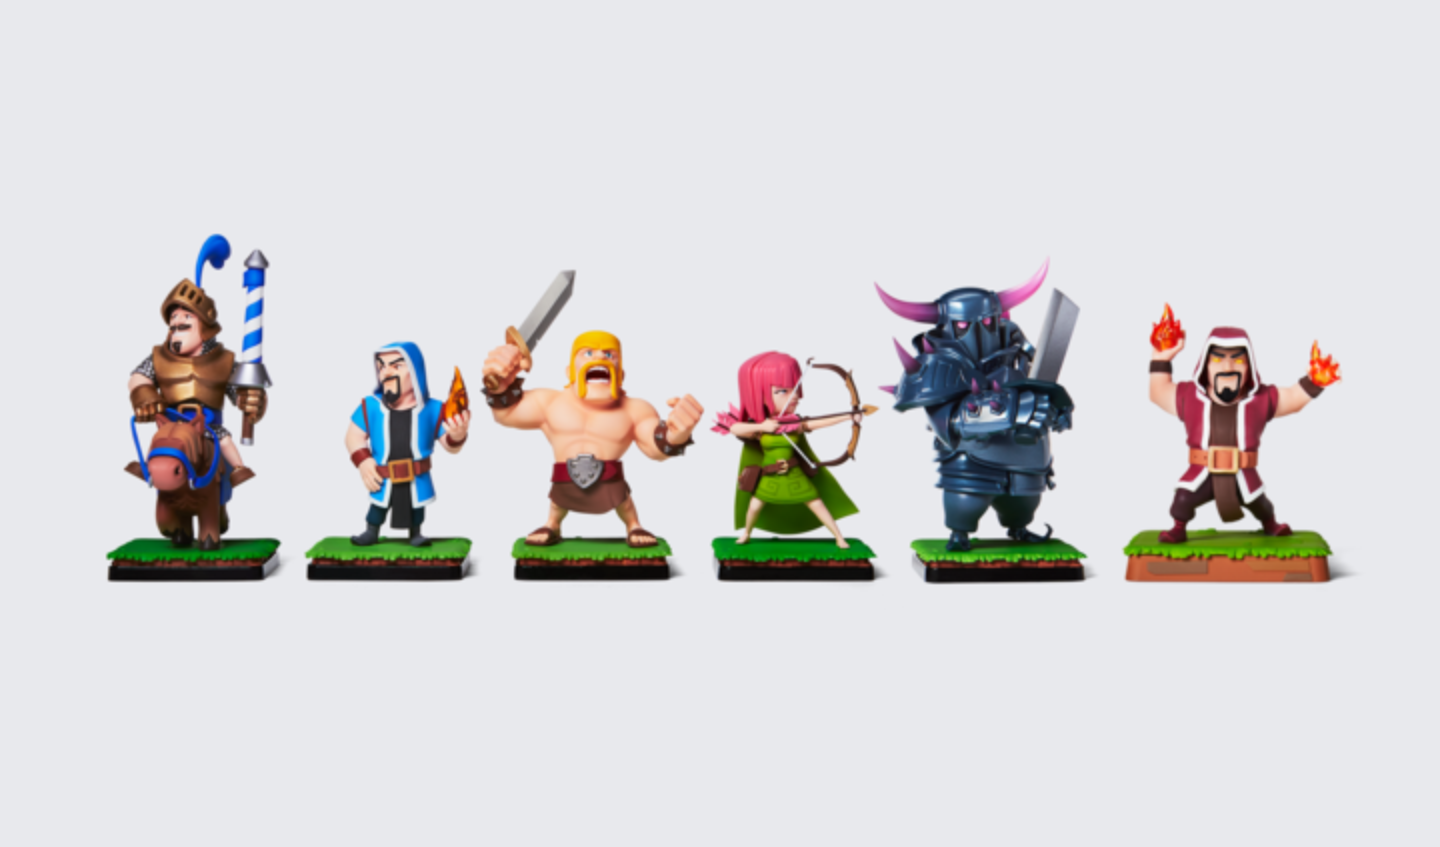 New Clash Of Clans People The Making Of Clash Figures